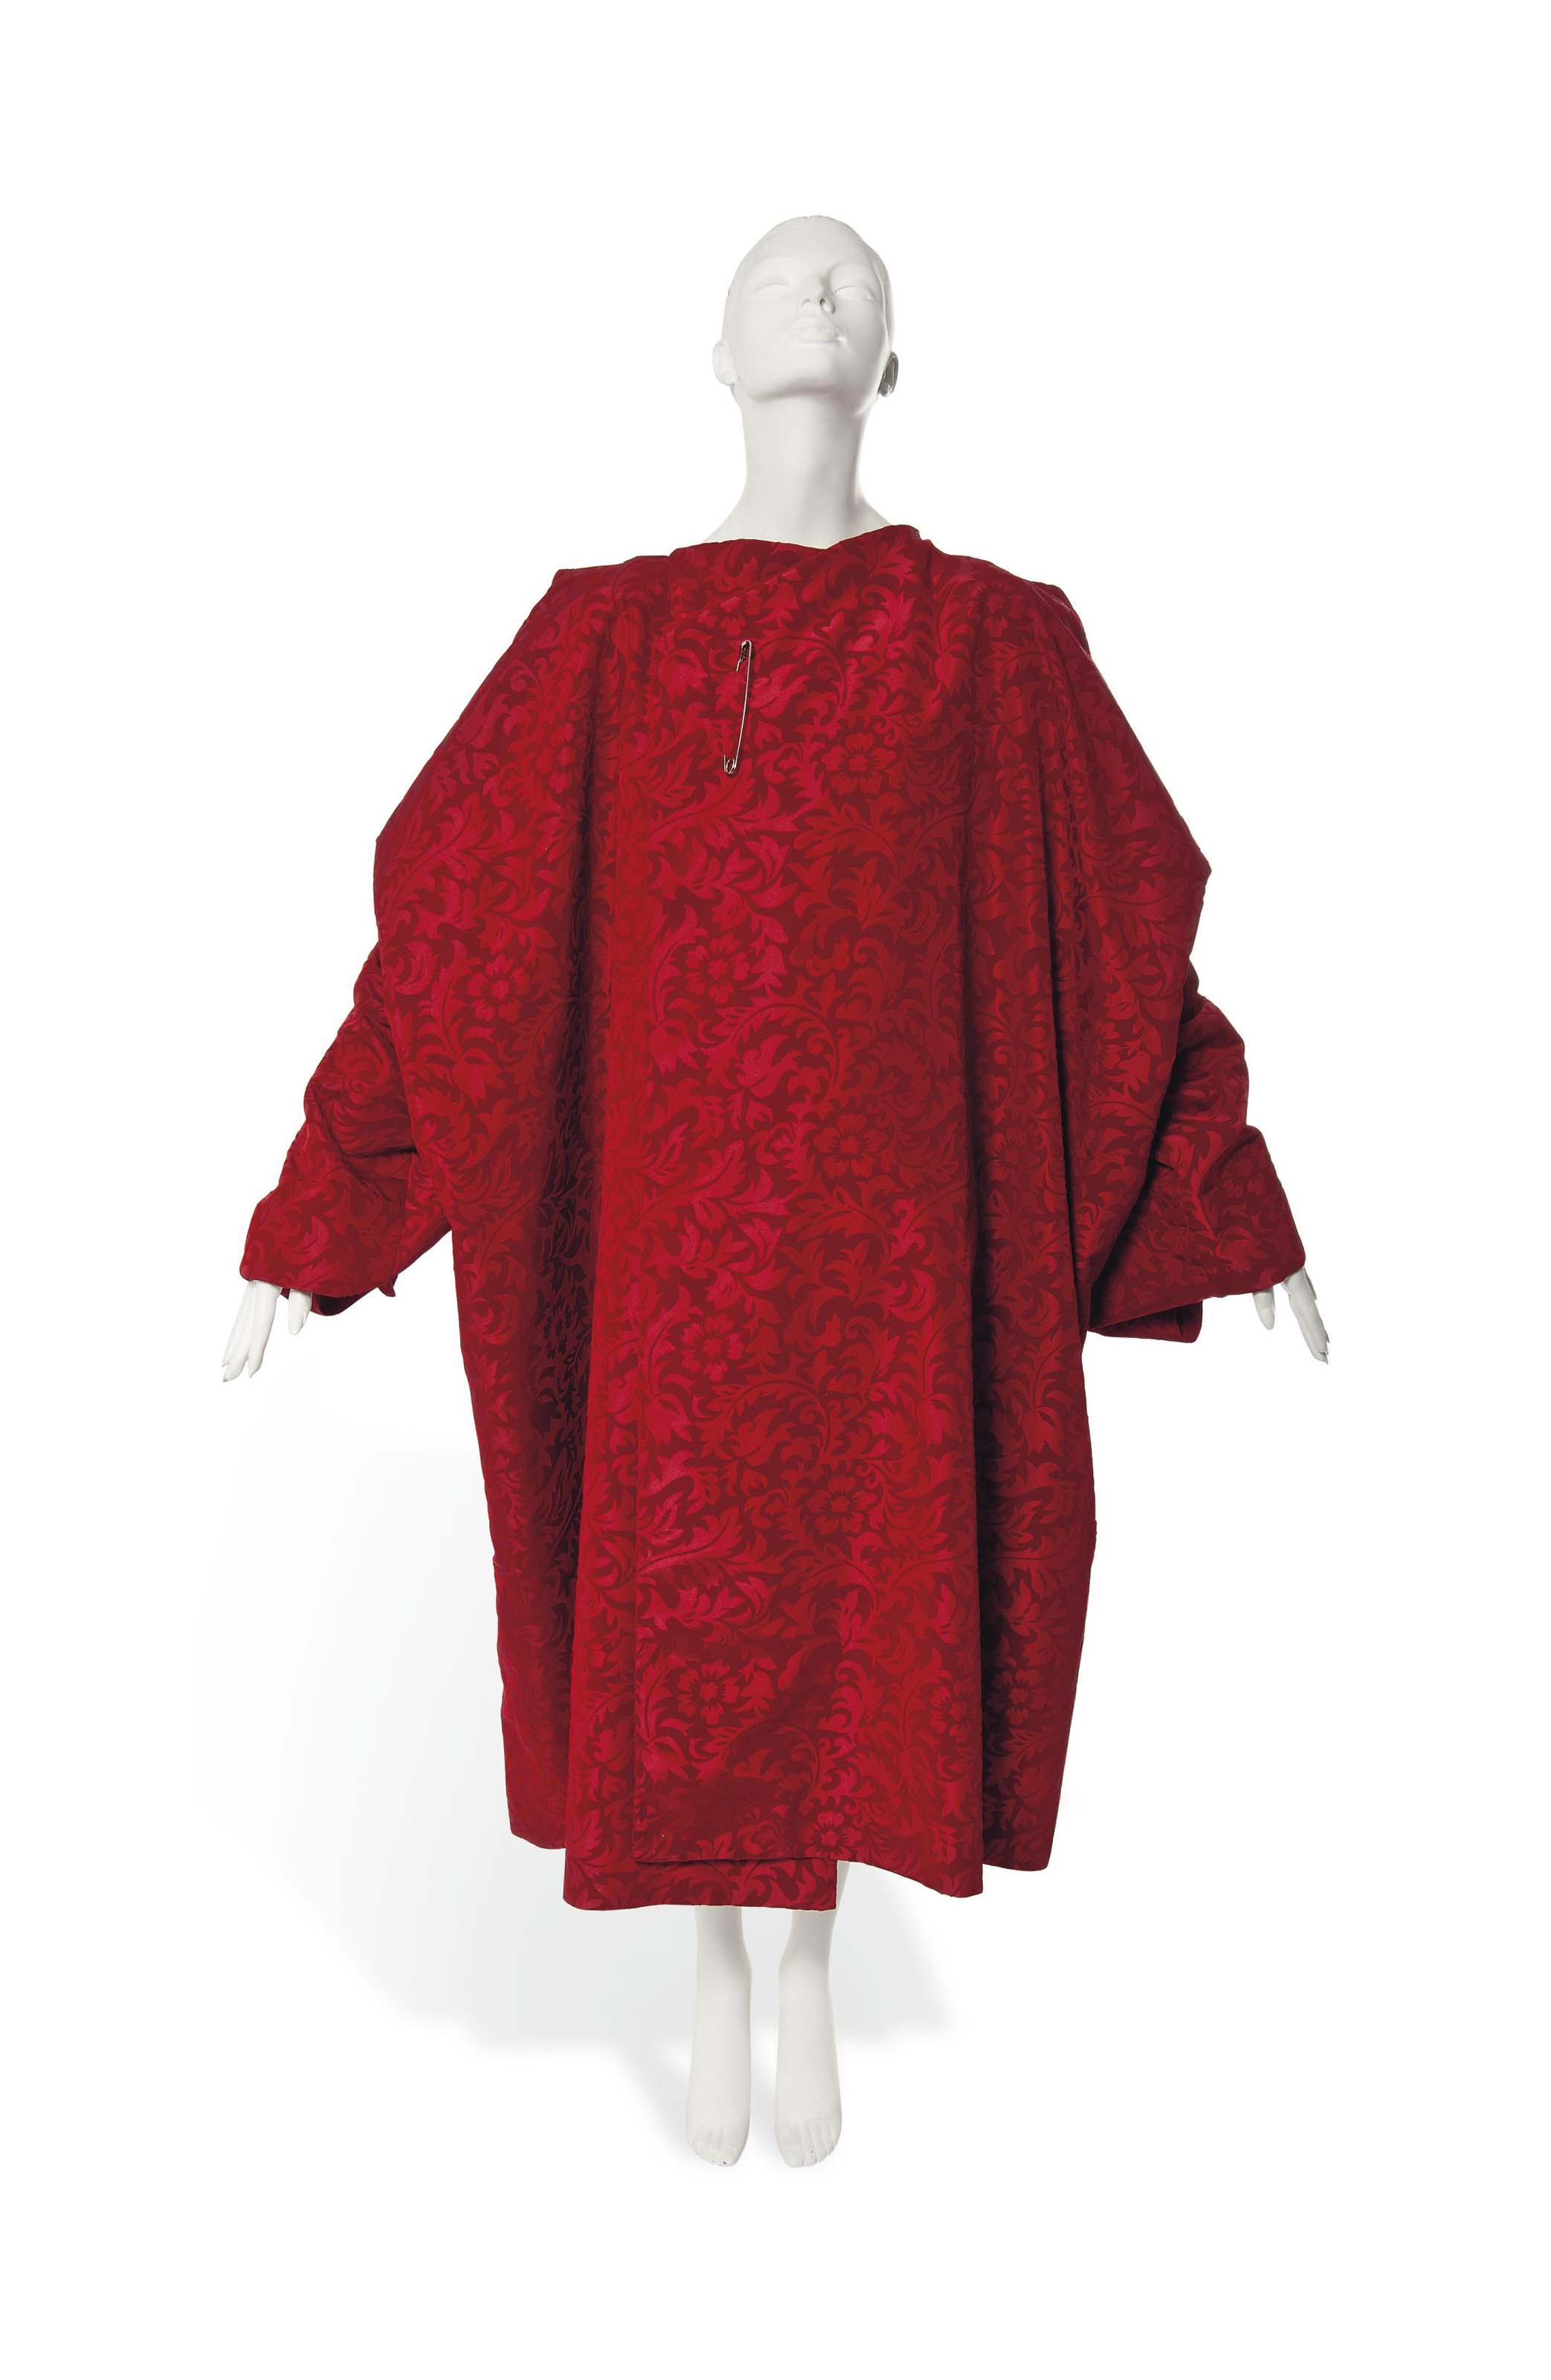 A COMME DES GARÇONS CHERRY RED TAFFETA VELVET EVENING CLOAK